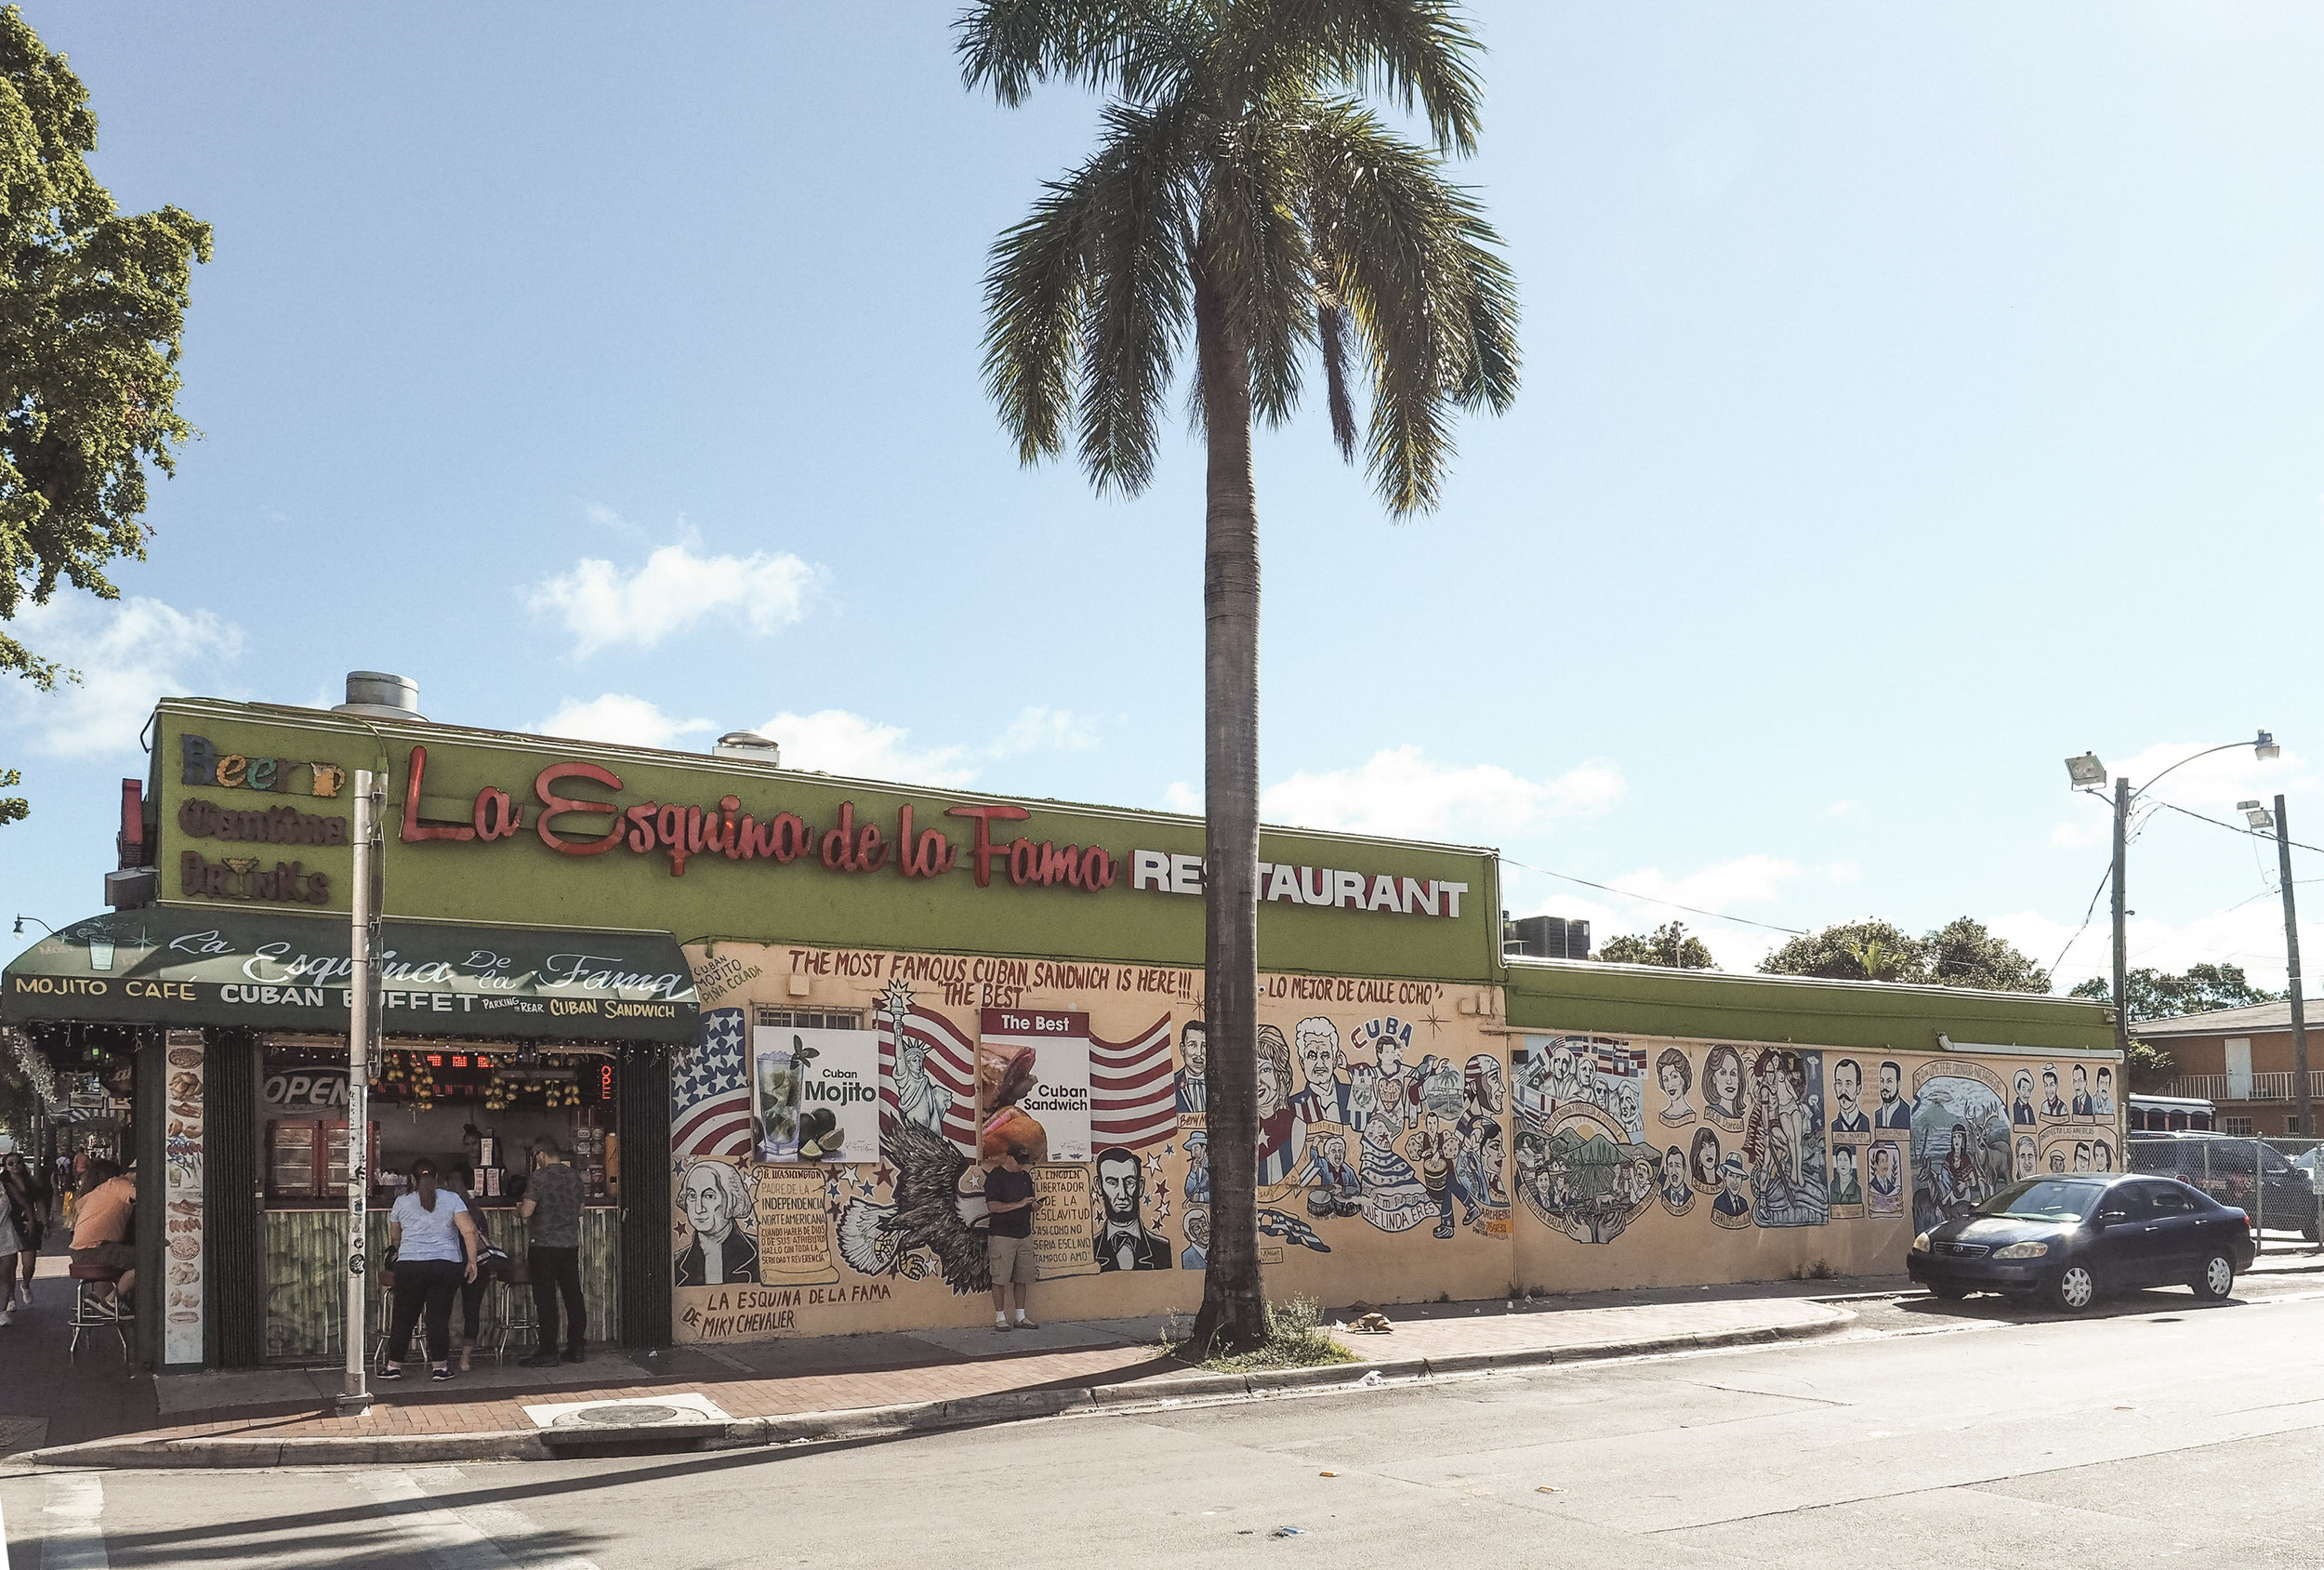 There are a lot of things to see in Miami, but one of the most unique things you can do is take a self-guided walking tour of Little Havana! In this beautiful neighborhood, you'll find shops, restaurants and colorful street art celebrating the vibrant culture and heritage of Cuba. You'll almost feel like you've actually traveled to another country! #florida #littlehavana #miami #traveldestinations